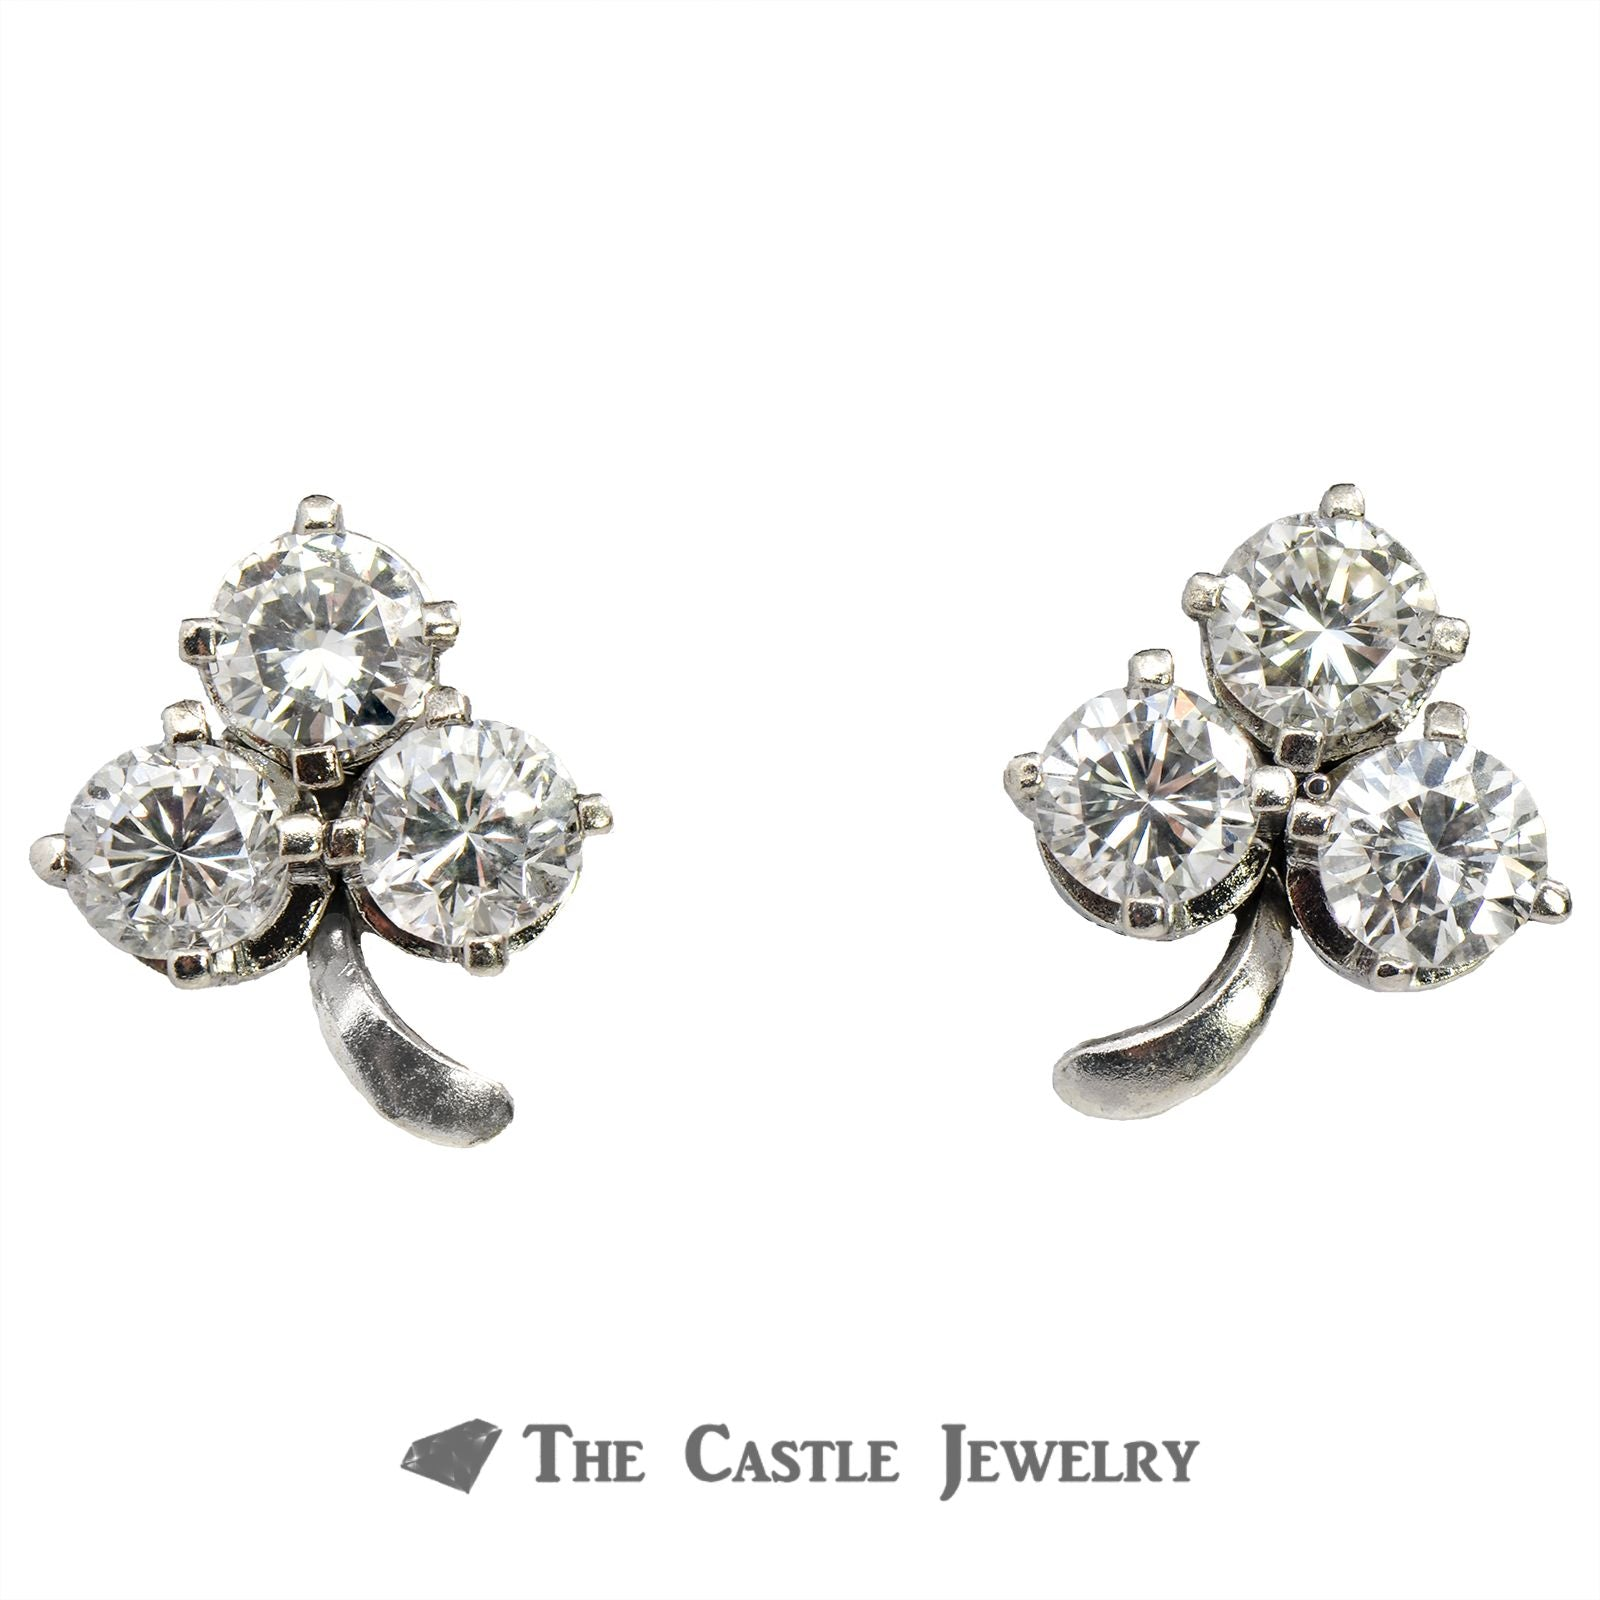 3 Leaf Clover Earrings of 1.38cttw Round Brilliant Cut Diamonds in White Gold